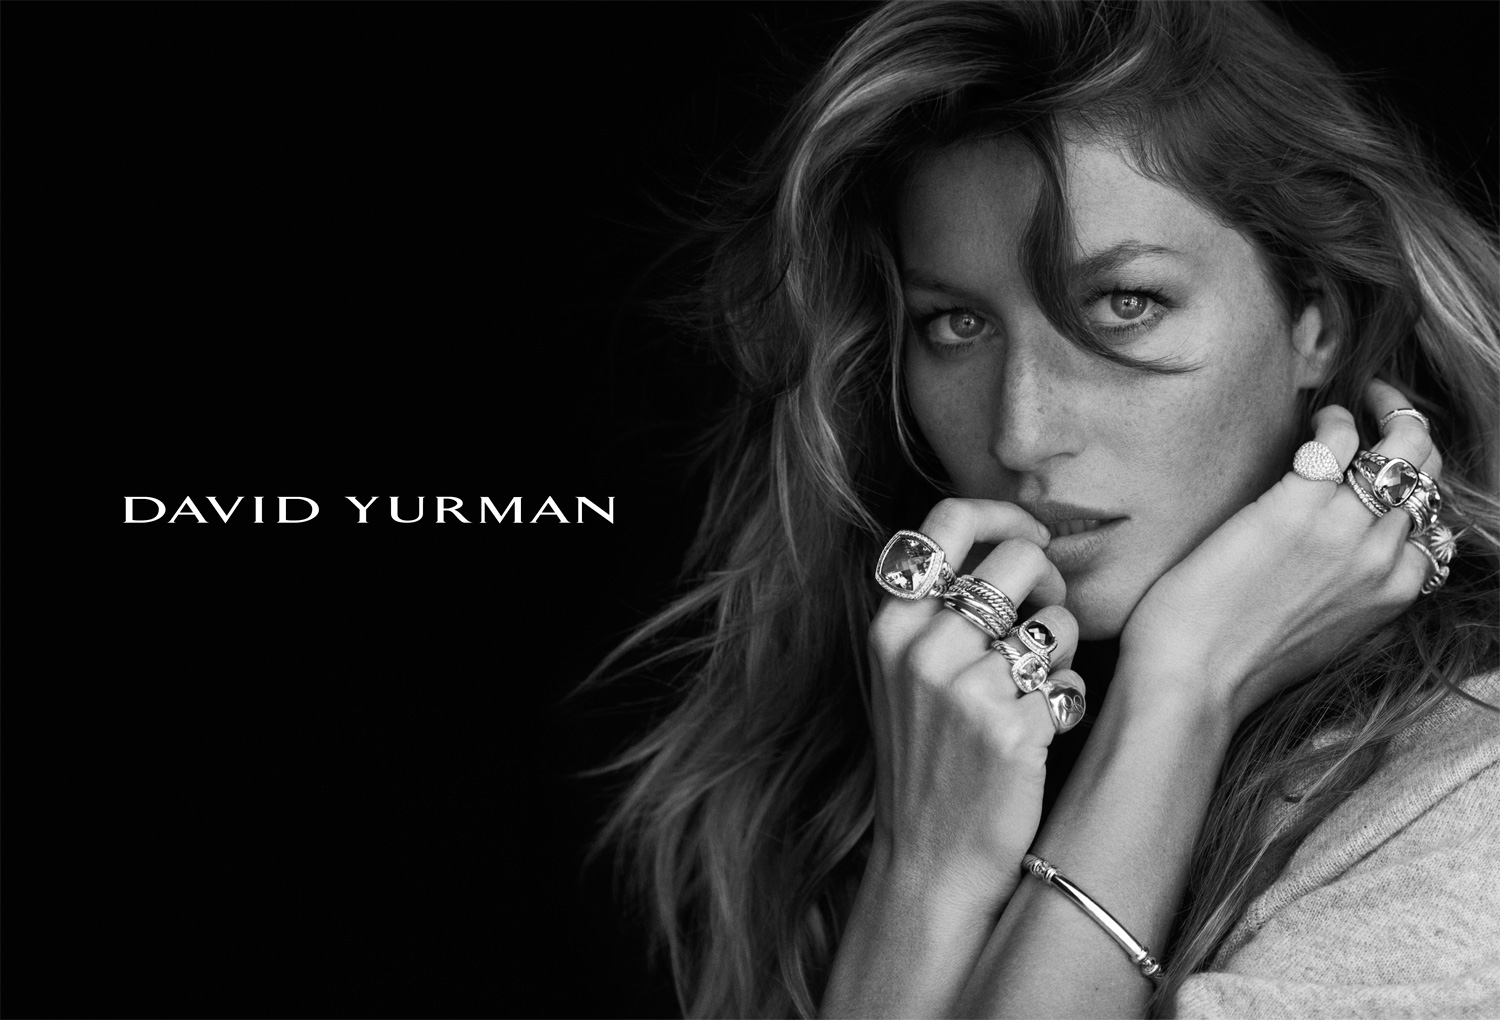 David Yurman To Showcase New Designs In New Yorkdale Location